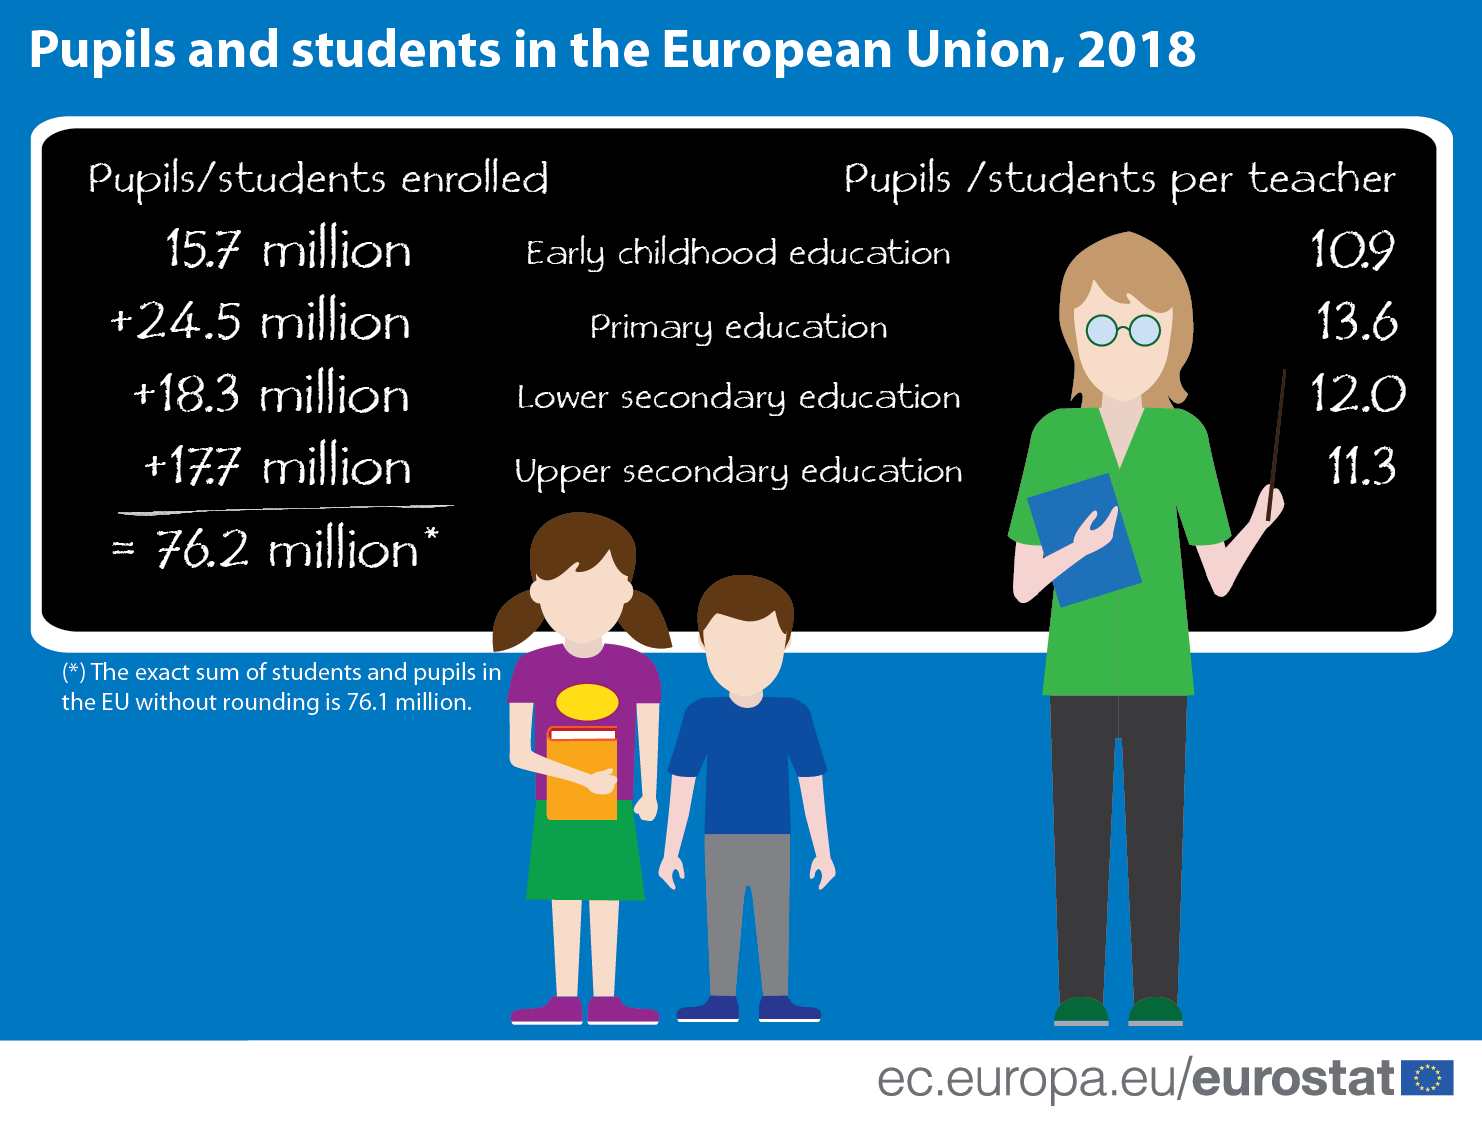 Pupils and students in the EU region - 2018